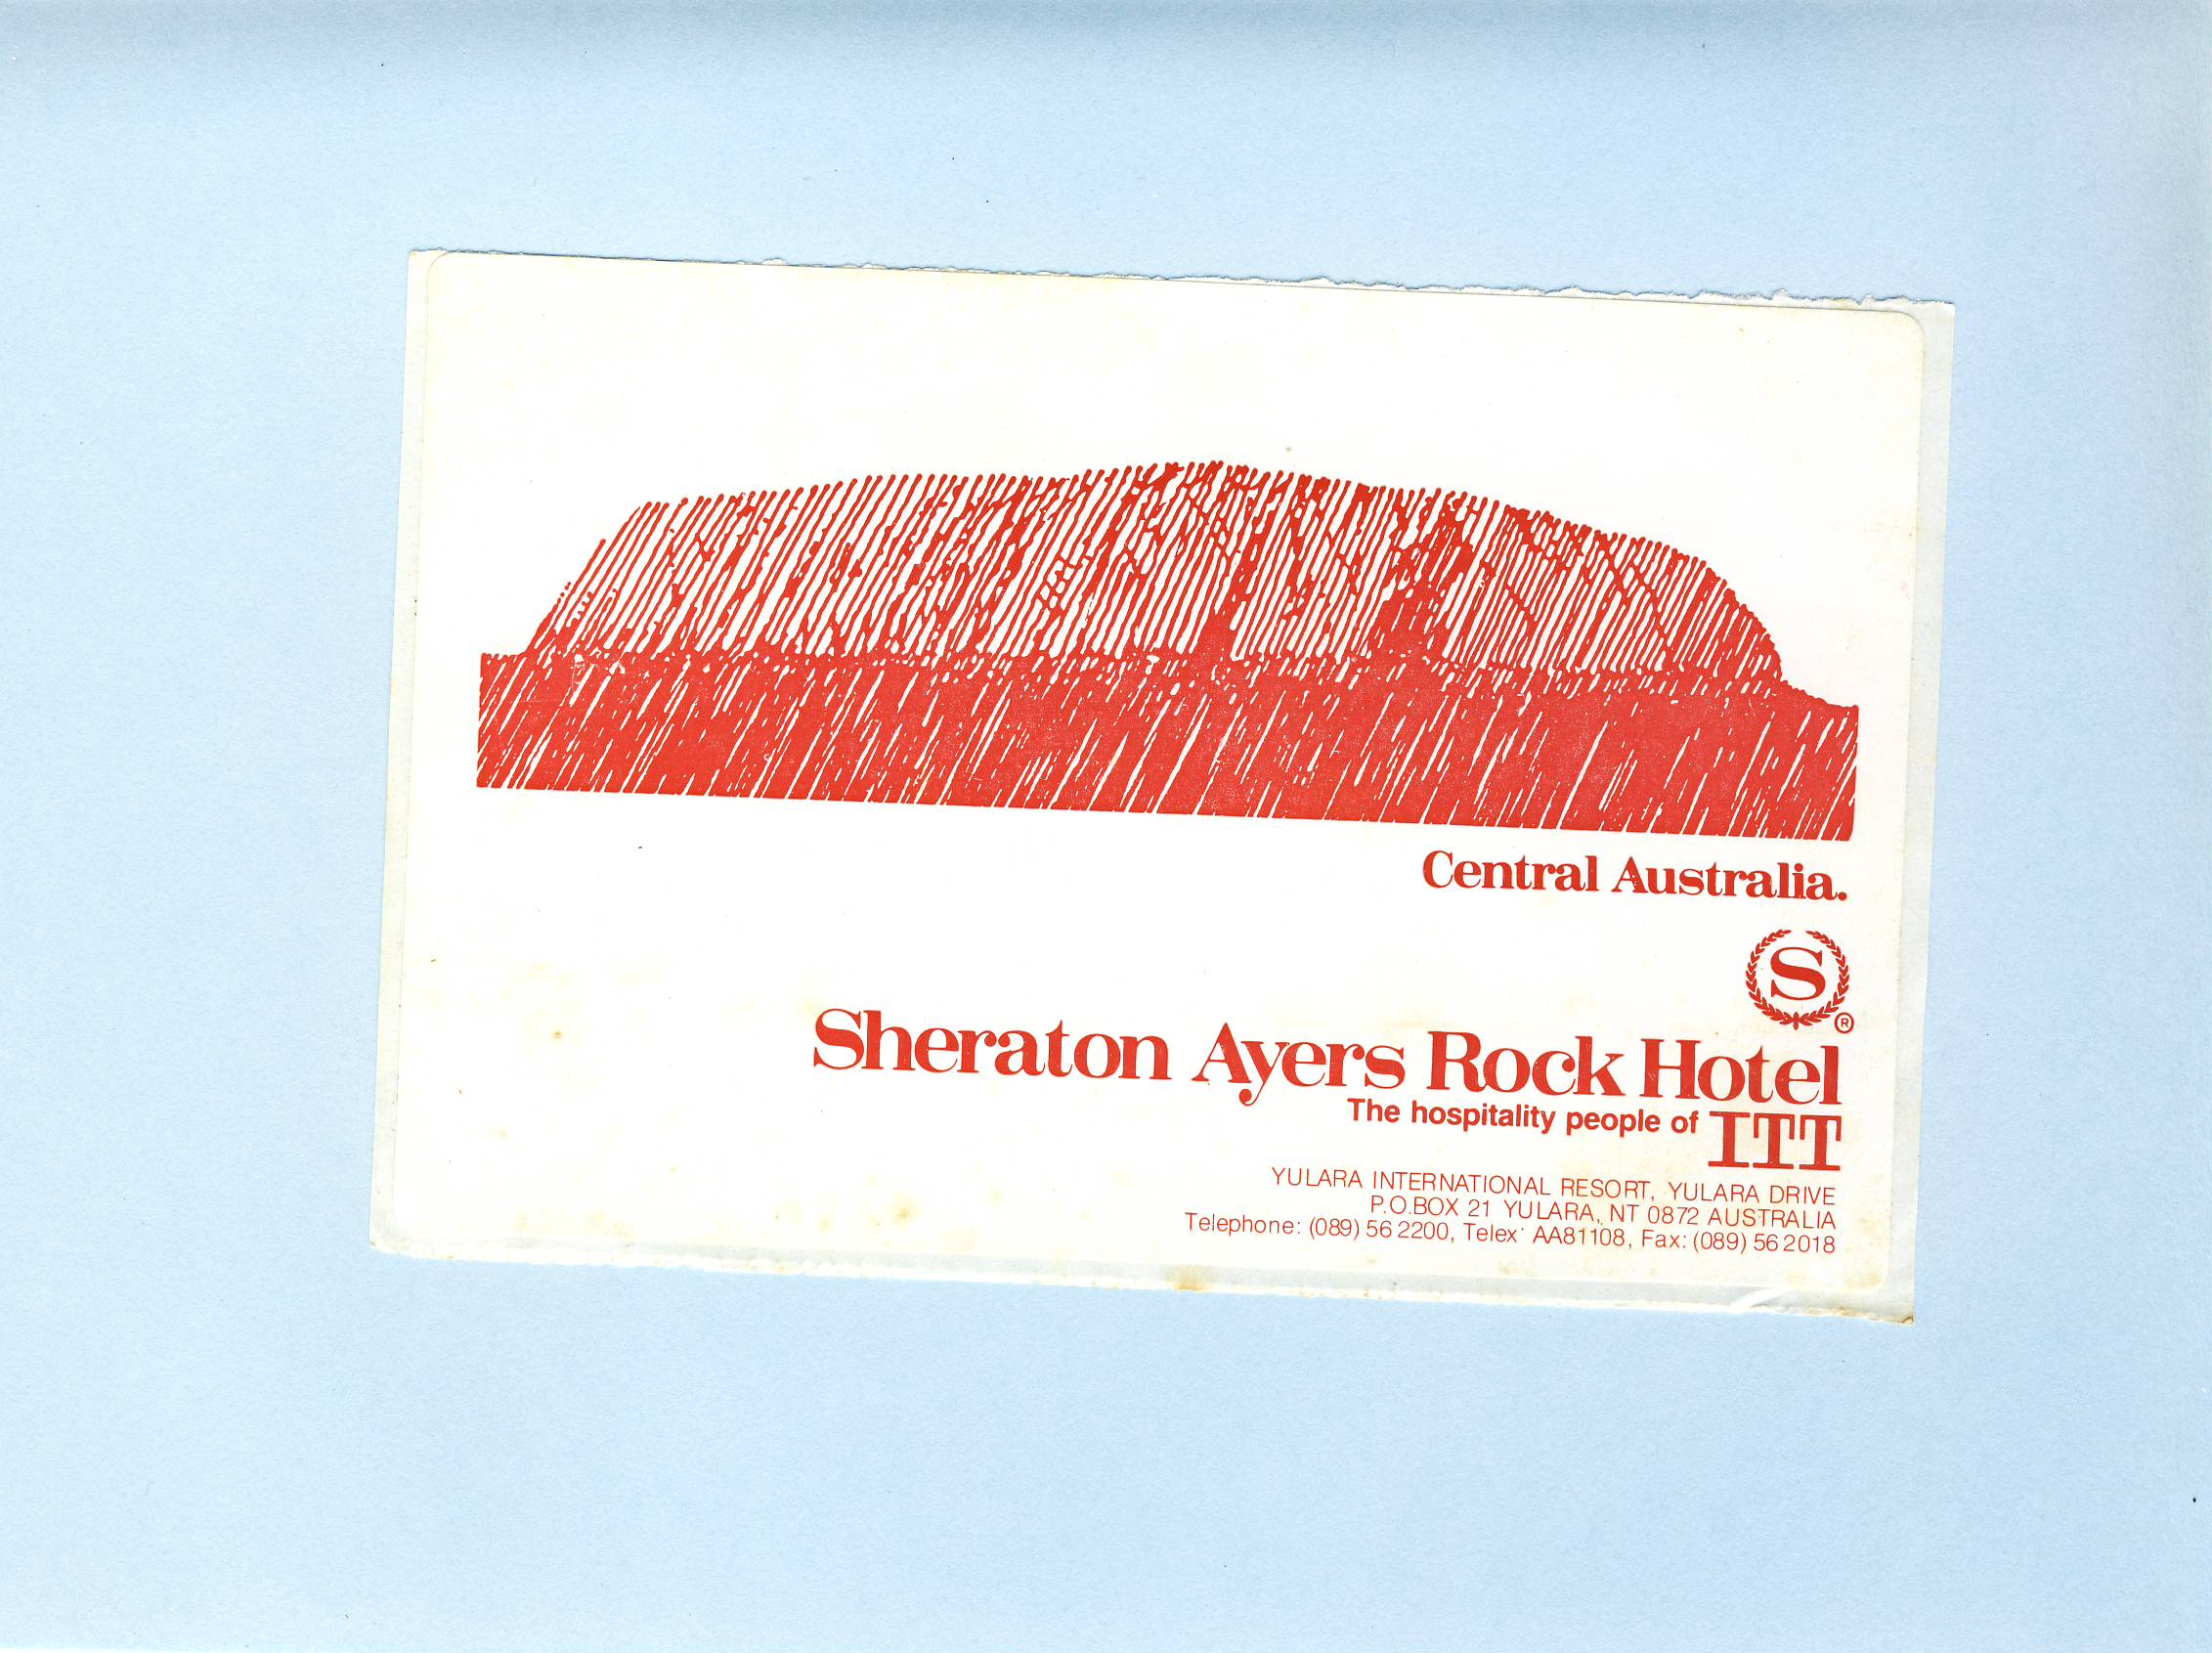 Sheraton Ayers Rock Hotel Central Australia vintage souvenir sticker refS5  a pre-owned vintage item in good condition. Unused. Measures approx. 8cm x 13cm